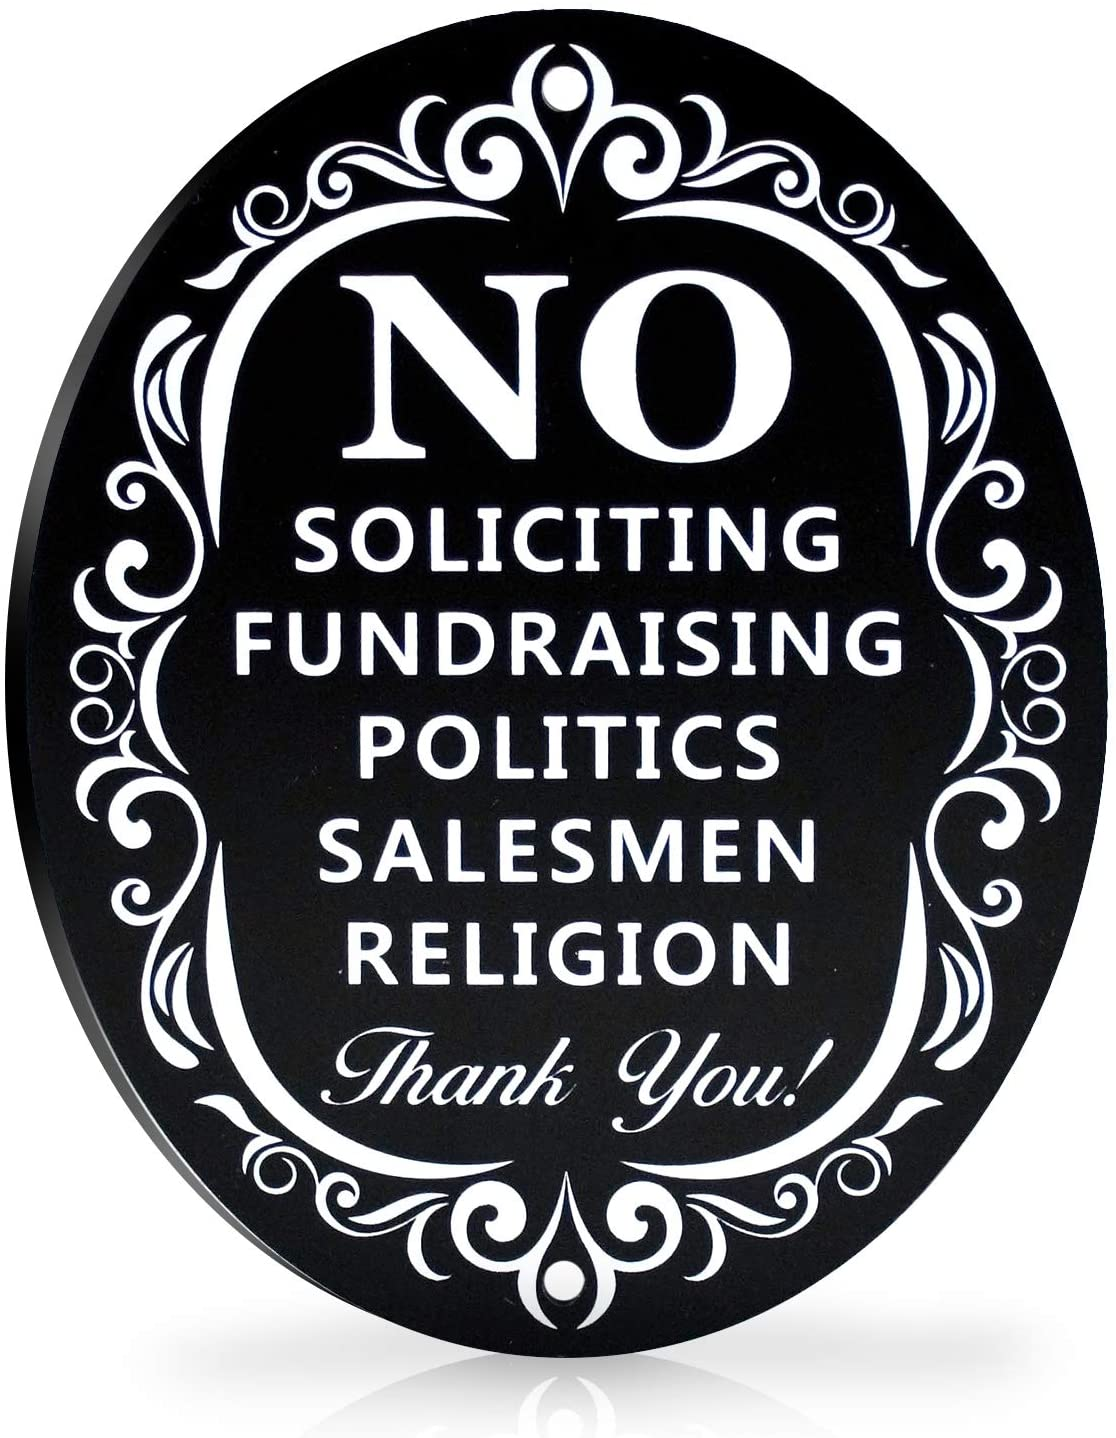 "No Soliciting Metal Sign for Home and Business | Larger Laser Cut Oval 6"" X 4.75"" Heavy Duty DiBond Aluminum 